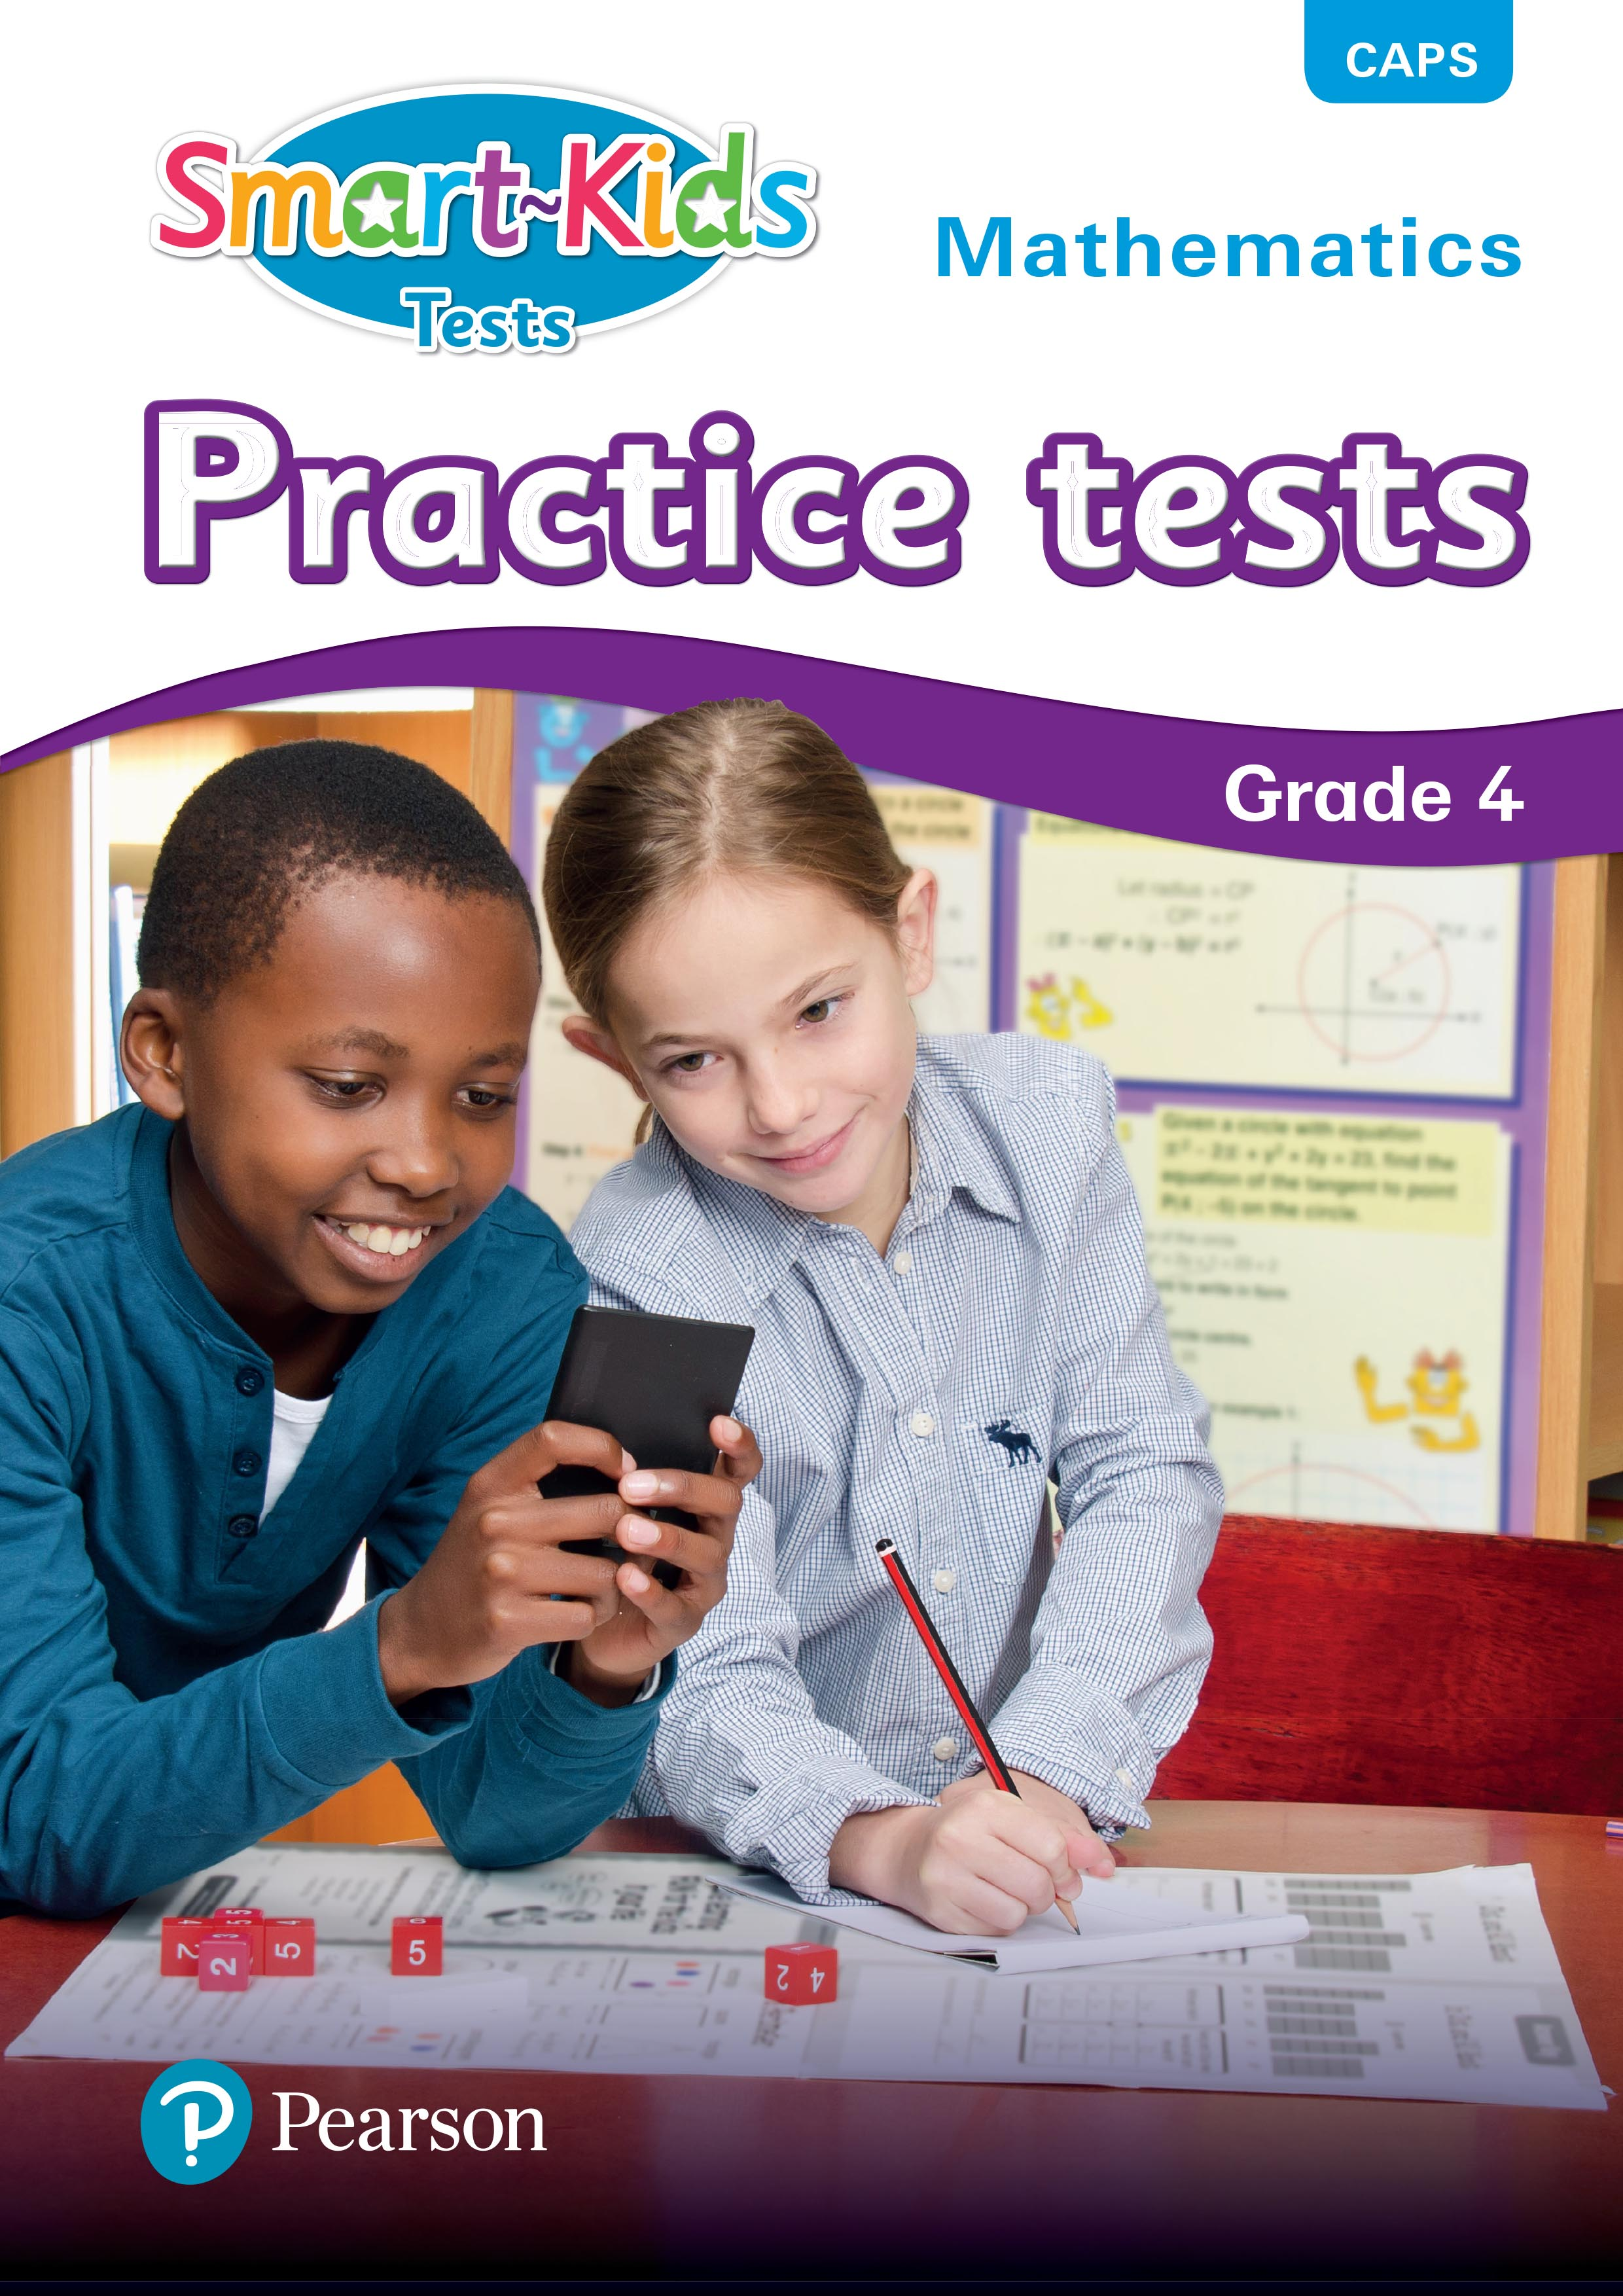 Picture of Smart-Kids Tests: Mathematics: Grade 4: Practice tests